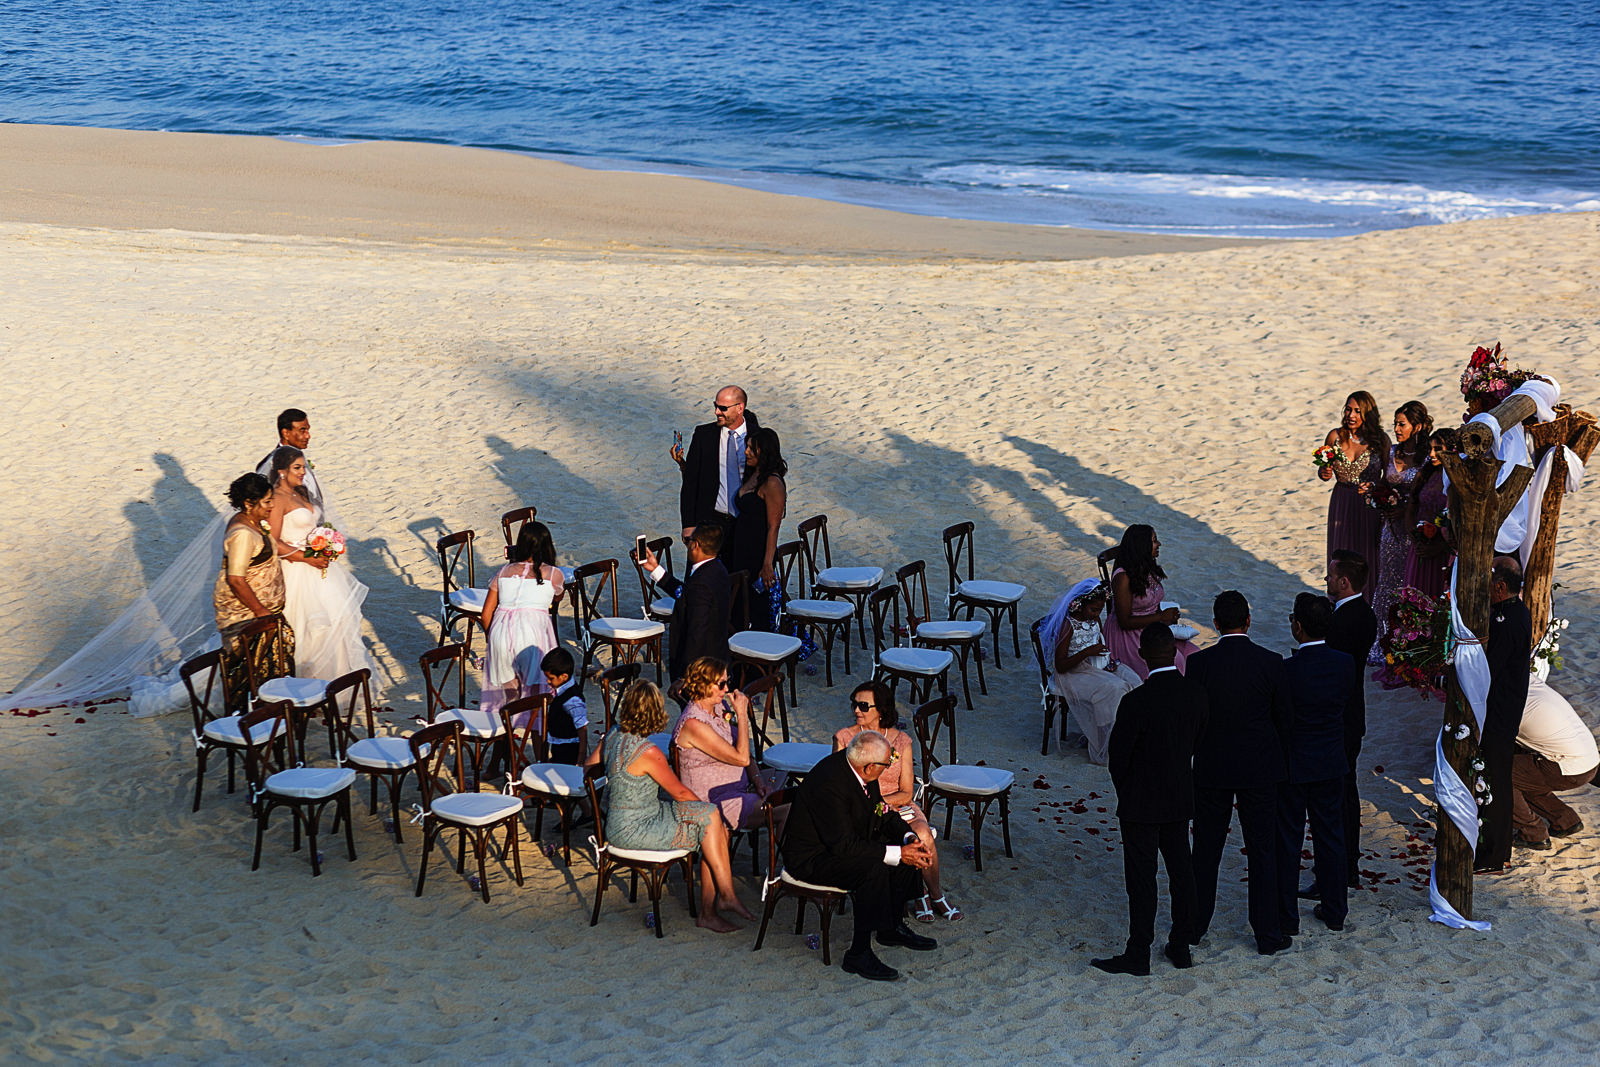 Bride with parents down the aisle at the wedding ceremony on the beach in Cabo San Lucas